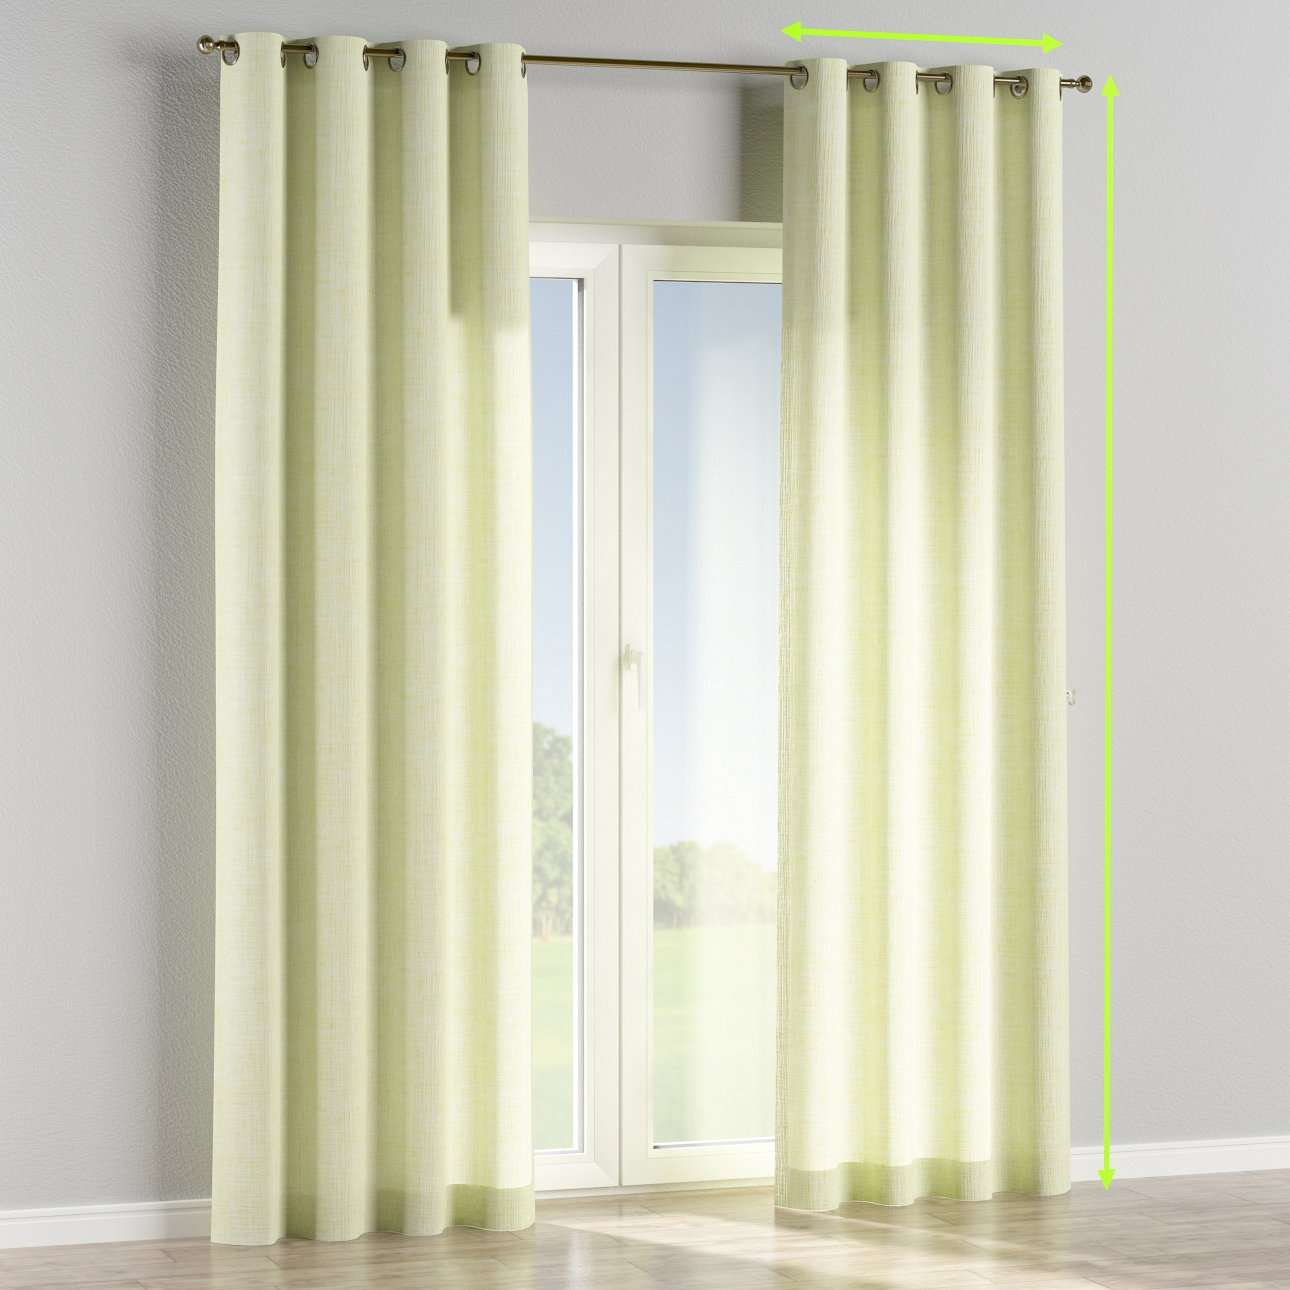 Eyelet lined curtains in collection Aquarelle, fabric: 140-73